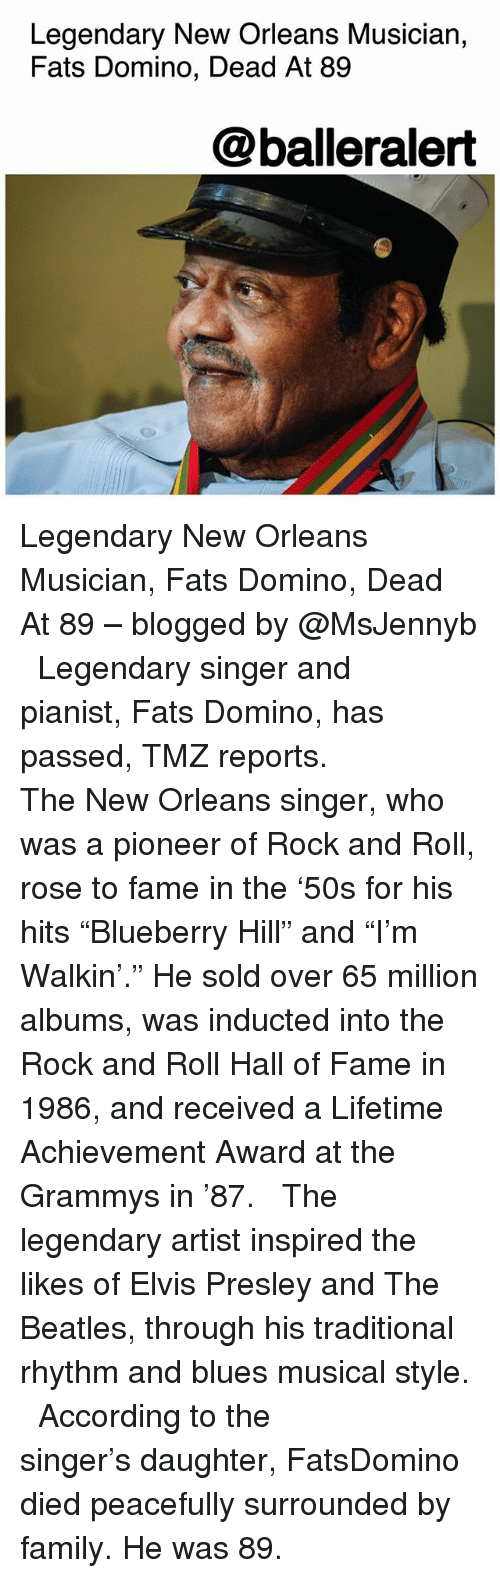 "Family, Grammys, and Memes: Legendary New Orleans Musician,  Fats Domino, Dead At 89  @balleralert Legendary New Orleans Musician, Fats Domino, Dead At 89 – blogged by @MsJennyb ⠀⠀⠀⠀⠀⠀⠀ ⠀⠀⠀⠀⠀⠀⠀ Legendary singer and pianist, Fats Domino, has passed, TMZ reports. ⠀⠀⠀⠀⠀⠀⠀ ⠀⠀⠀⠀⠀⠀⠀ The New Orleans singer, who was a pioneer of Rock and Roll, rose to fame in the '50s for his hits ""Blueberry Hill"" and ""I'm Walkin'."" He sold over 65 million albums, was inducted into the Rock and Roll Hall of Fame in 1986, and received a Lifetime Achievement Award at the Grammys in '87. ⠀⠀⠀⠀⠀⠀⠀ ⠀⠀⠀⠀⠀⠀⠀ The legendary artist inspired the likes of Elvis Presley and The Beatles, through his traditional rhythm and blues musical style. ⠀⠀⠀⠀⠀⠀⠀ ⠀⠀⠀⠀⠀⠀⠀ According to the singer's daughter, FatsDomino died peacefully surrounded by family. He was 89."